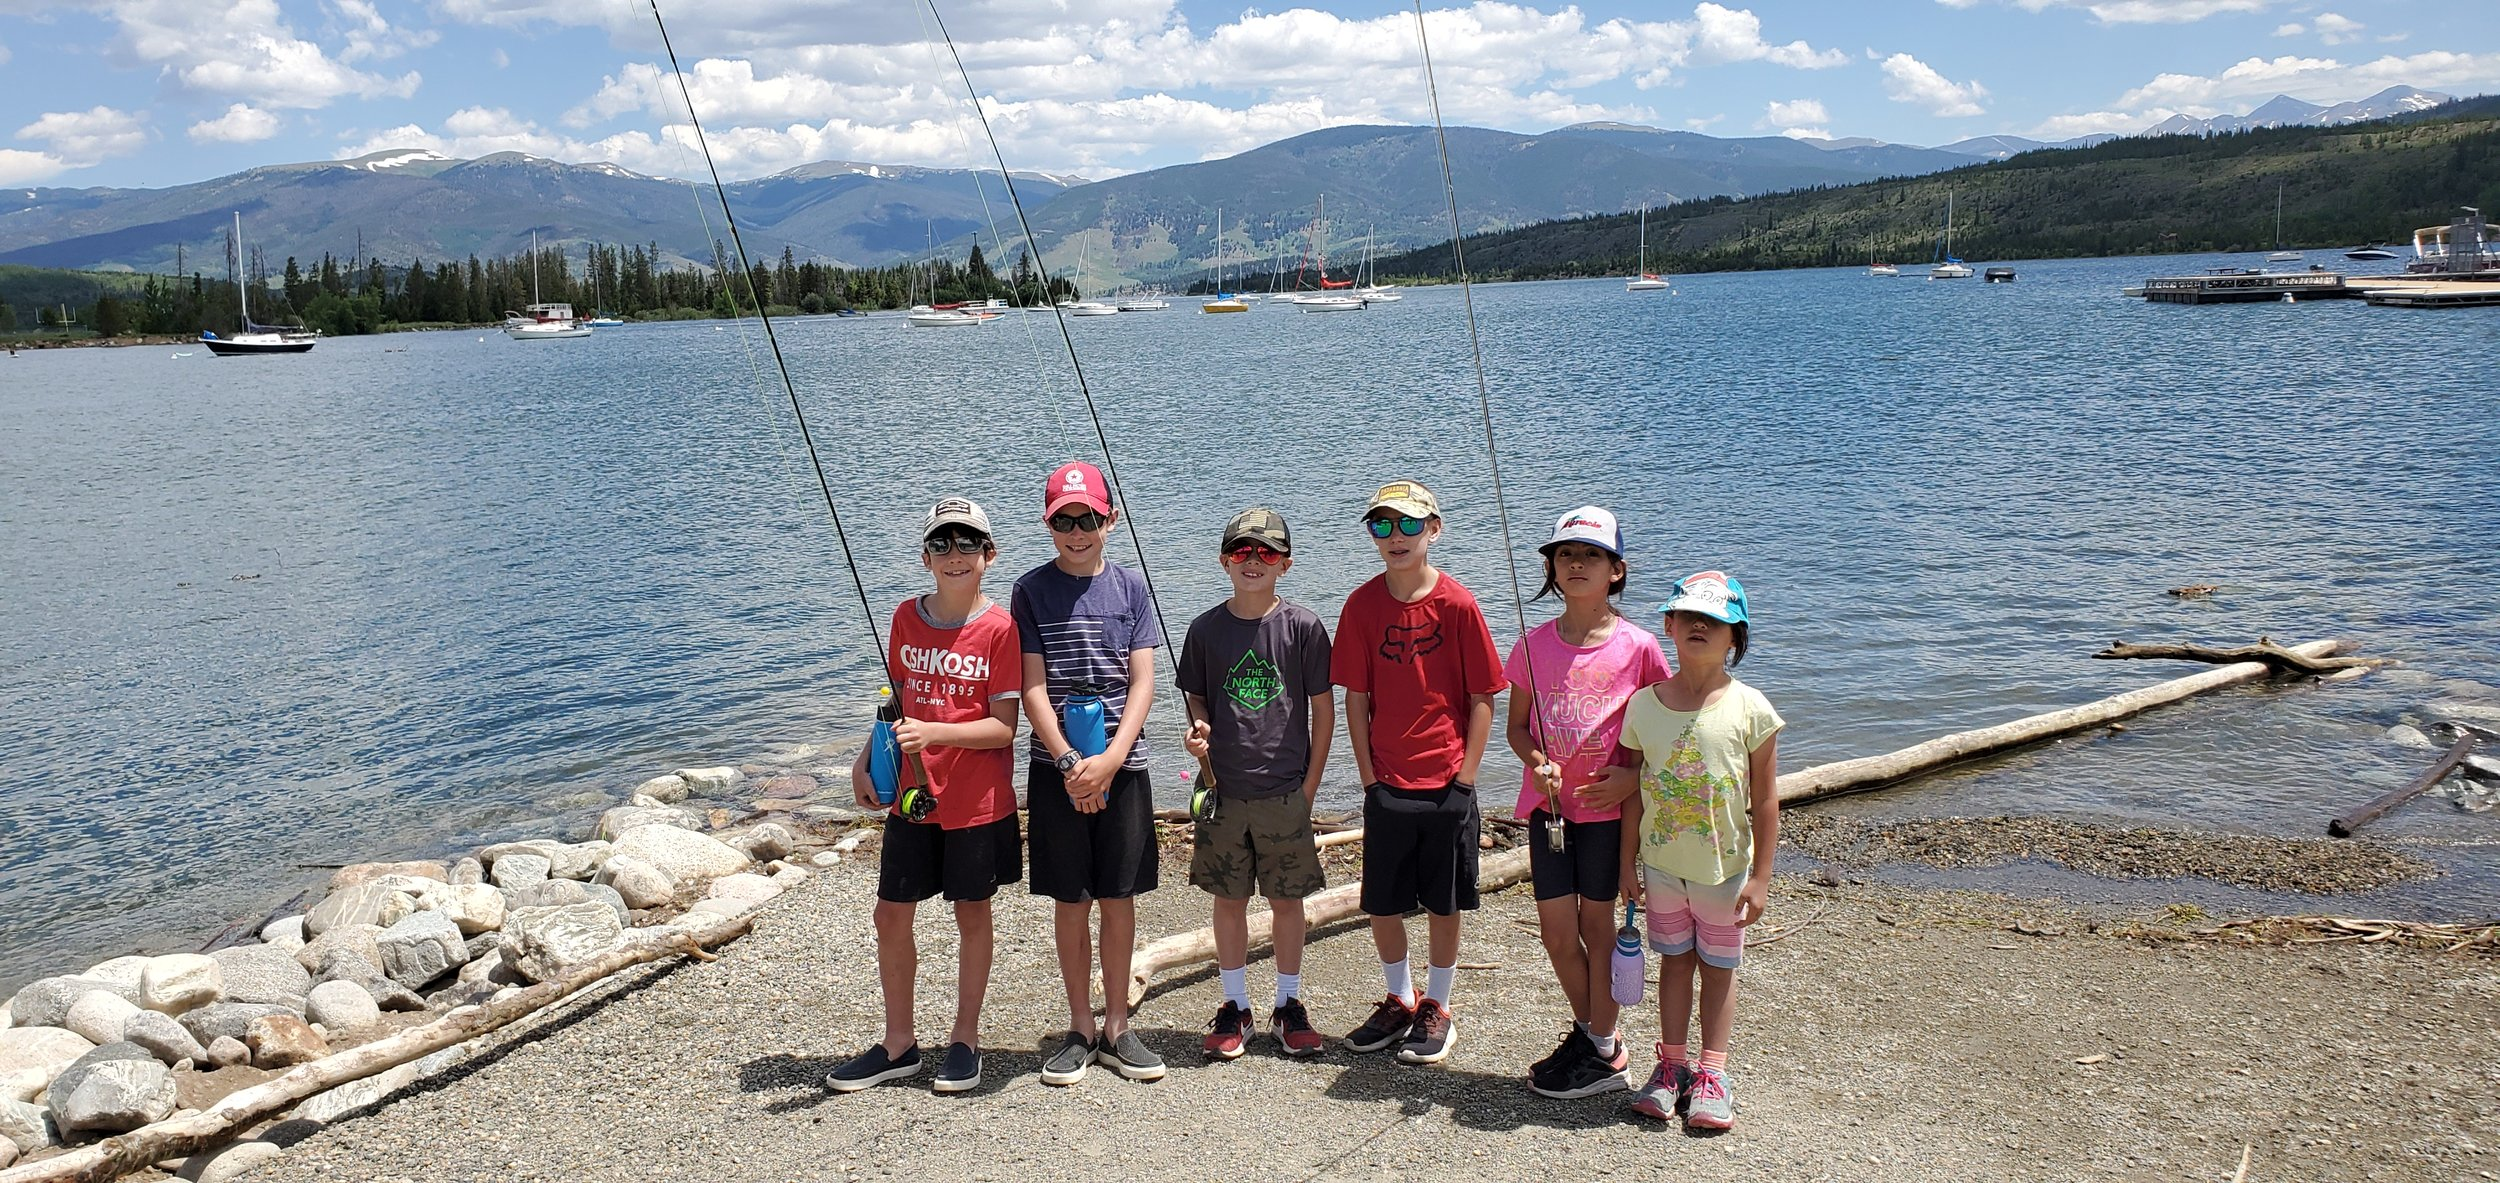 Kids and adults alike enjoy learning how to fly fish on Lake Dillon in the Rocky Mountains.